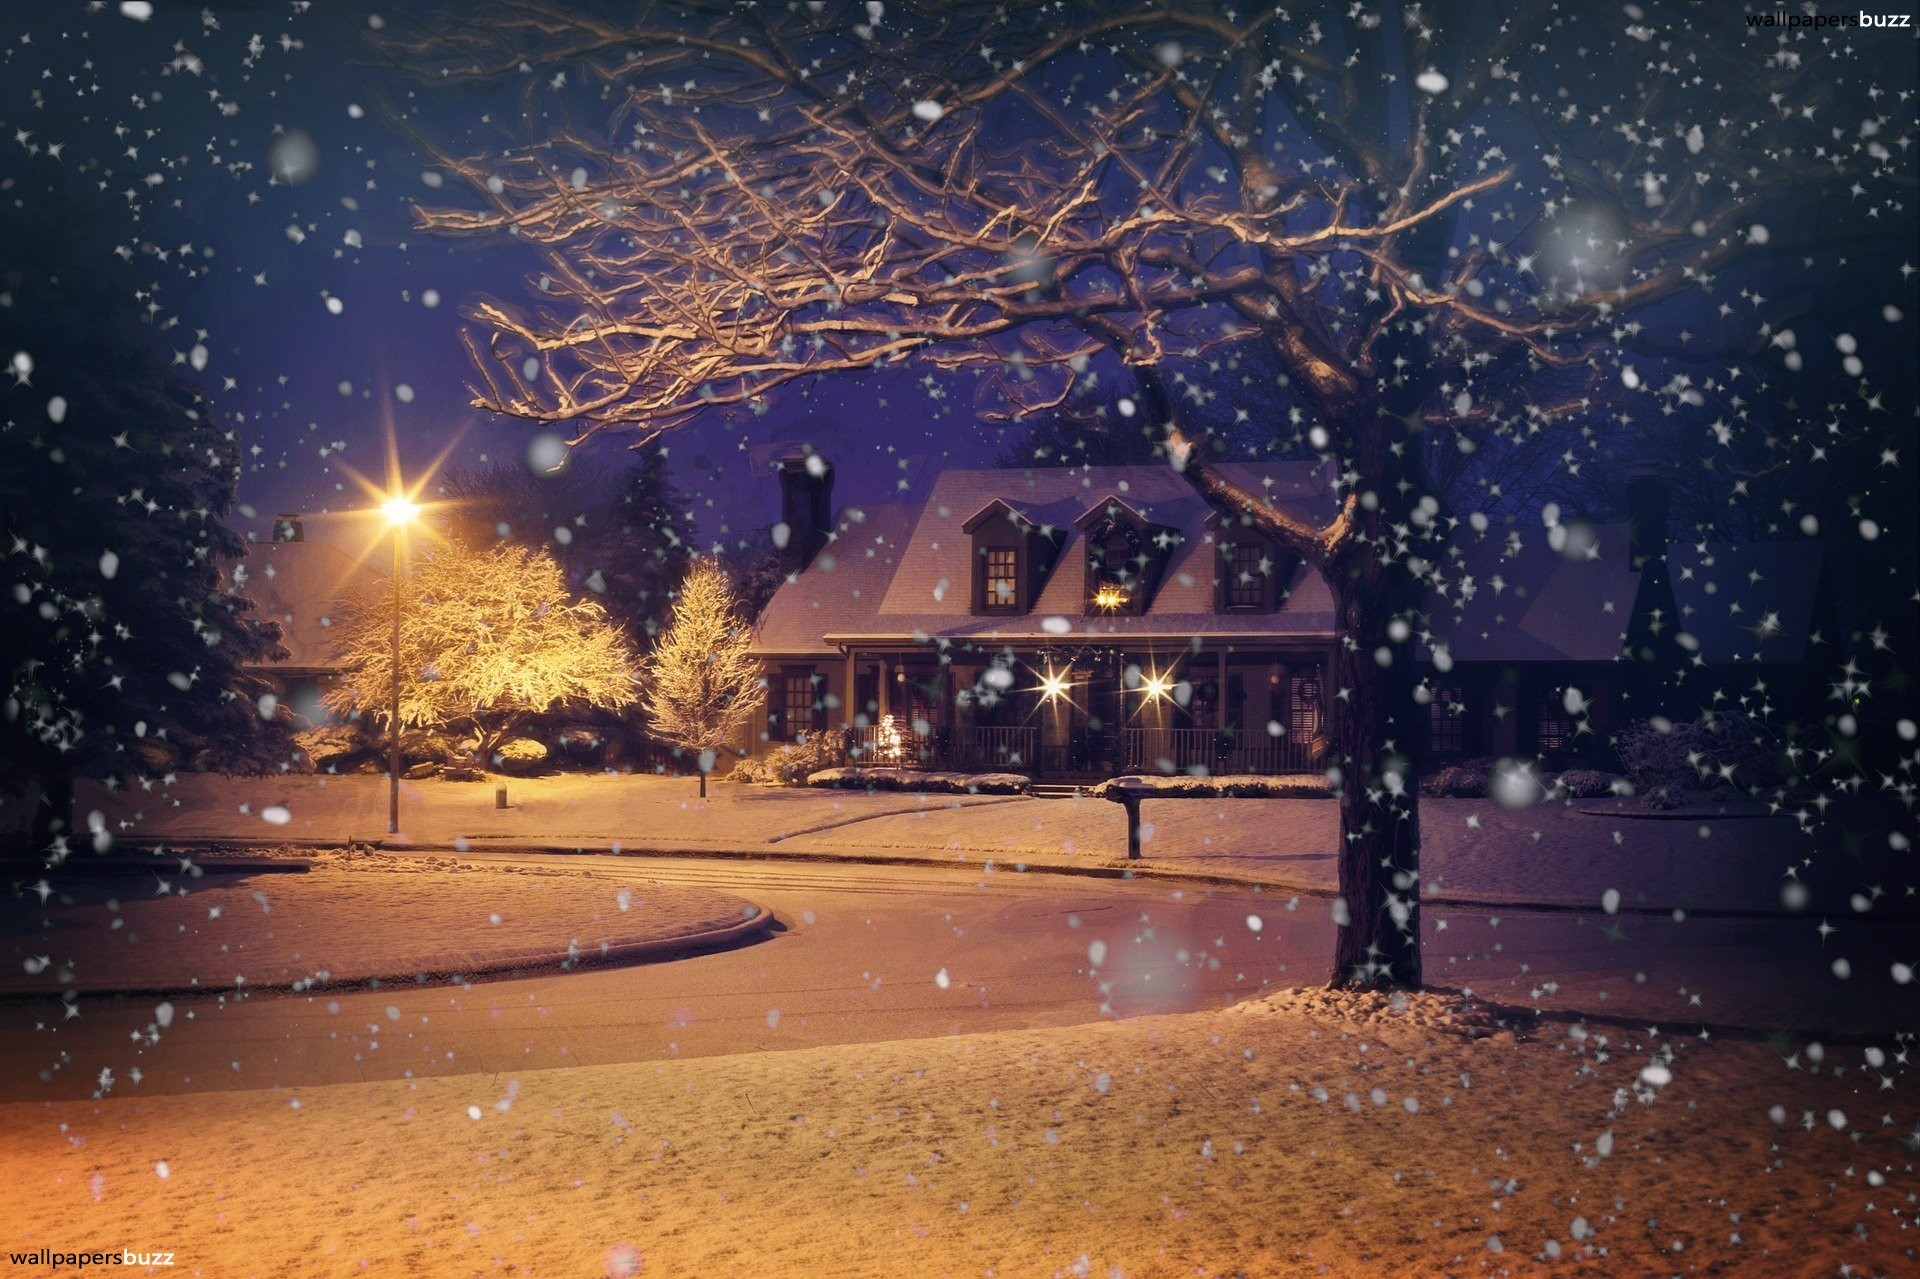 1920x1279 It is a cosy and romantic winter night. It is snowing. A big house can be  seen in the background. This HD image can be resized for your desktop.